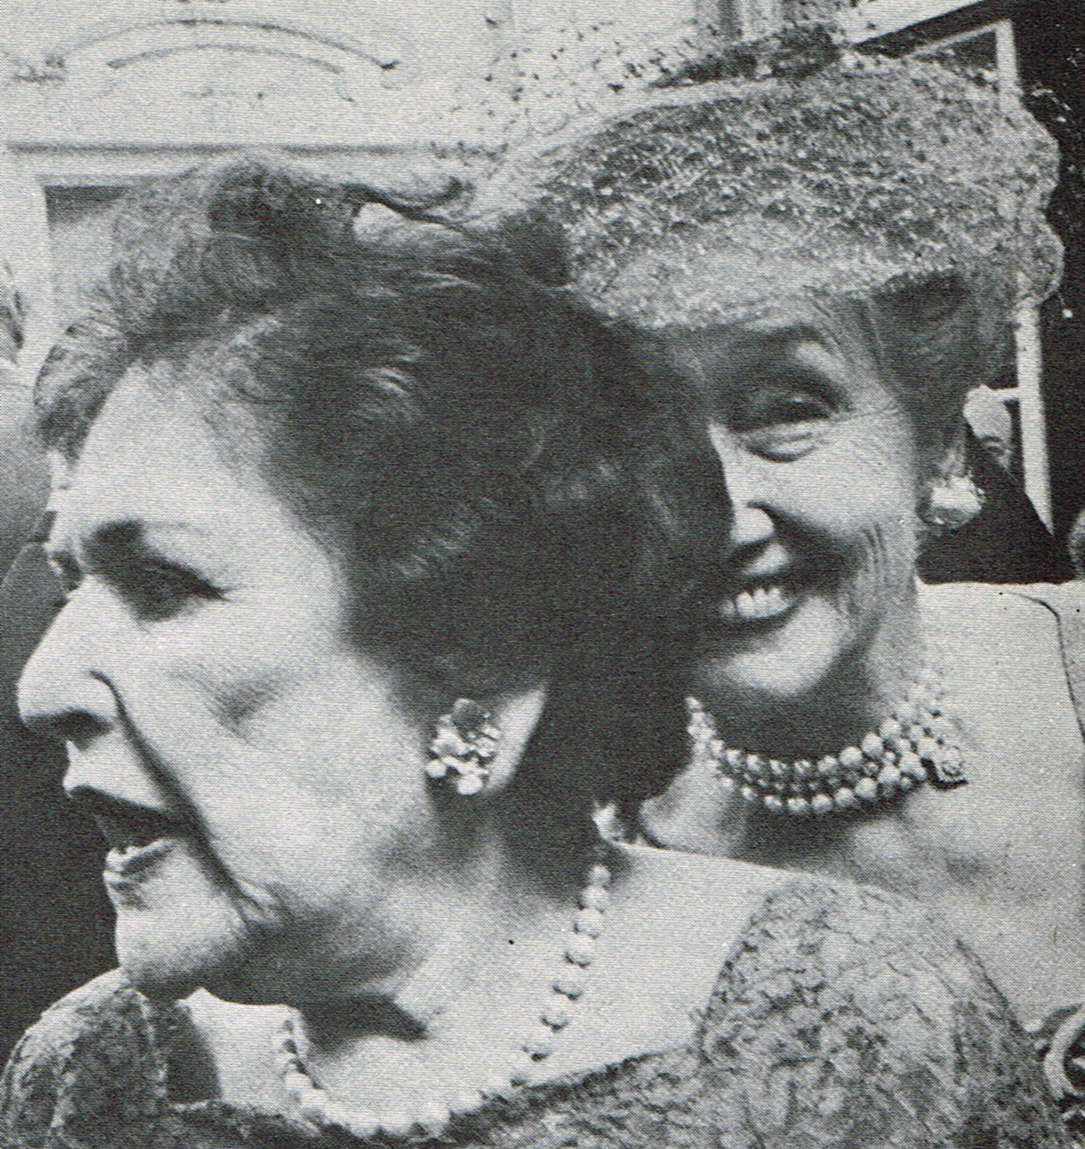 Louella Parsons and Hedda Hopper